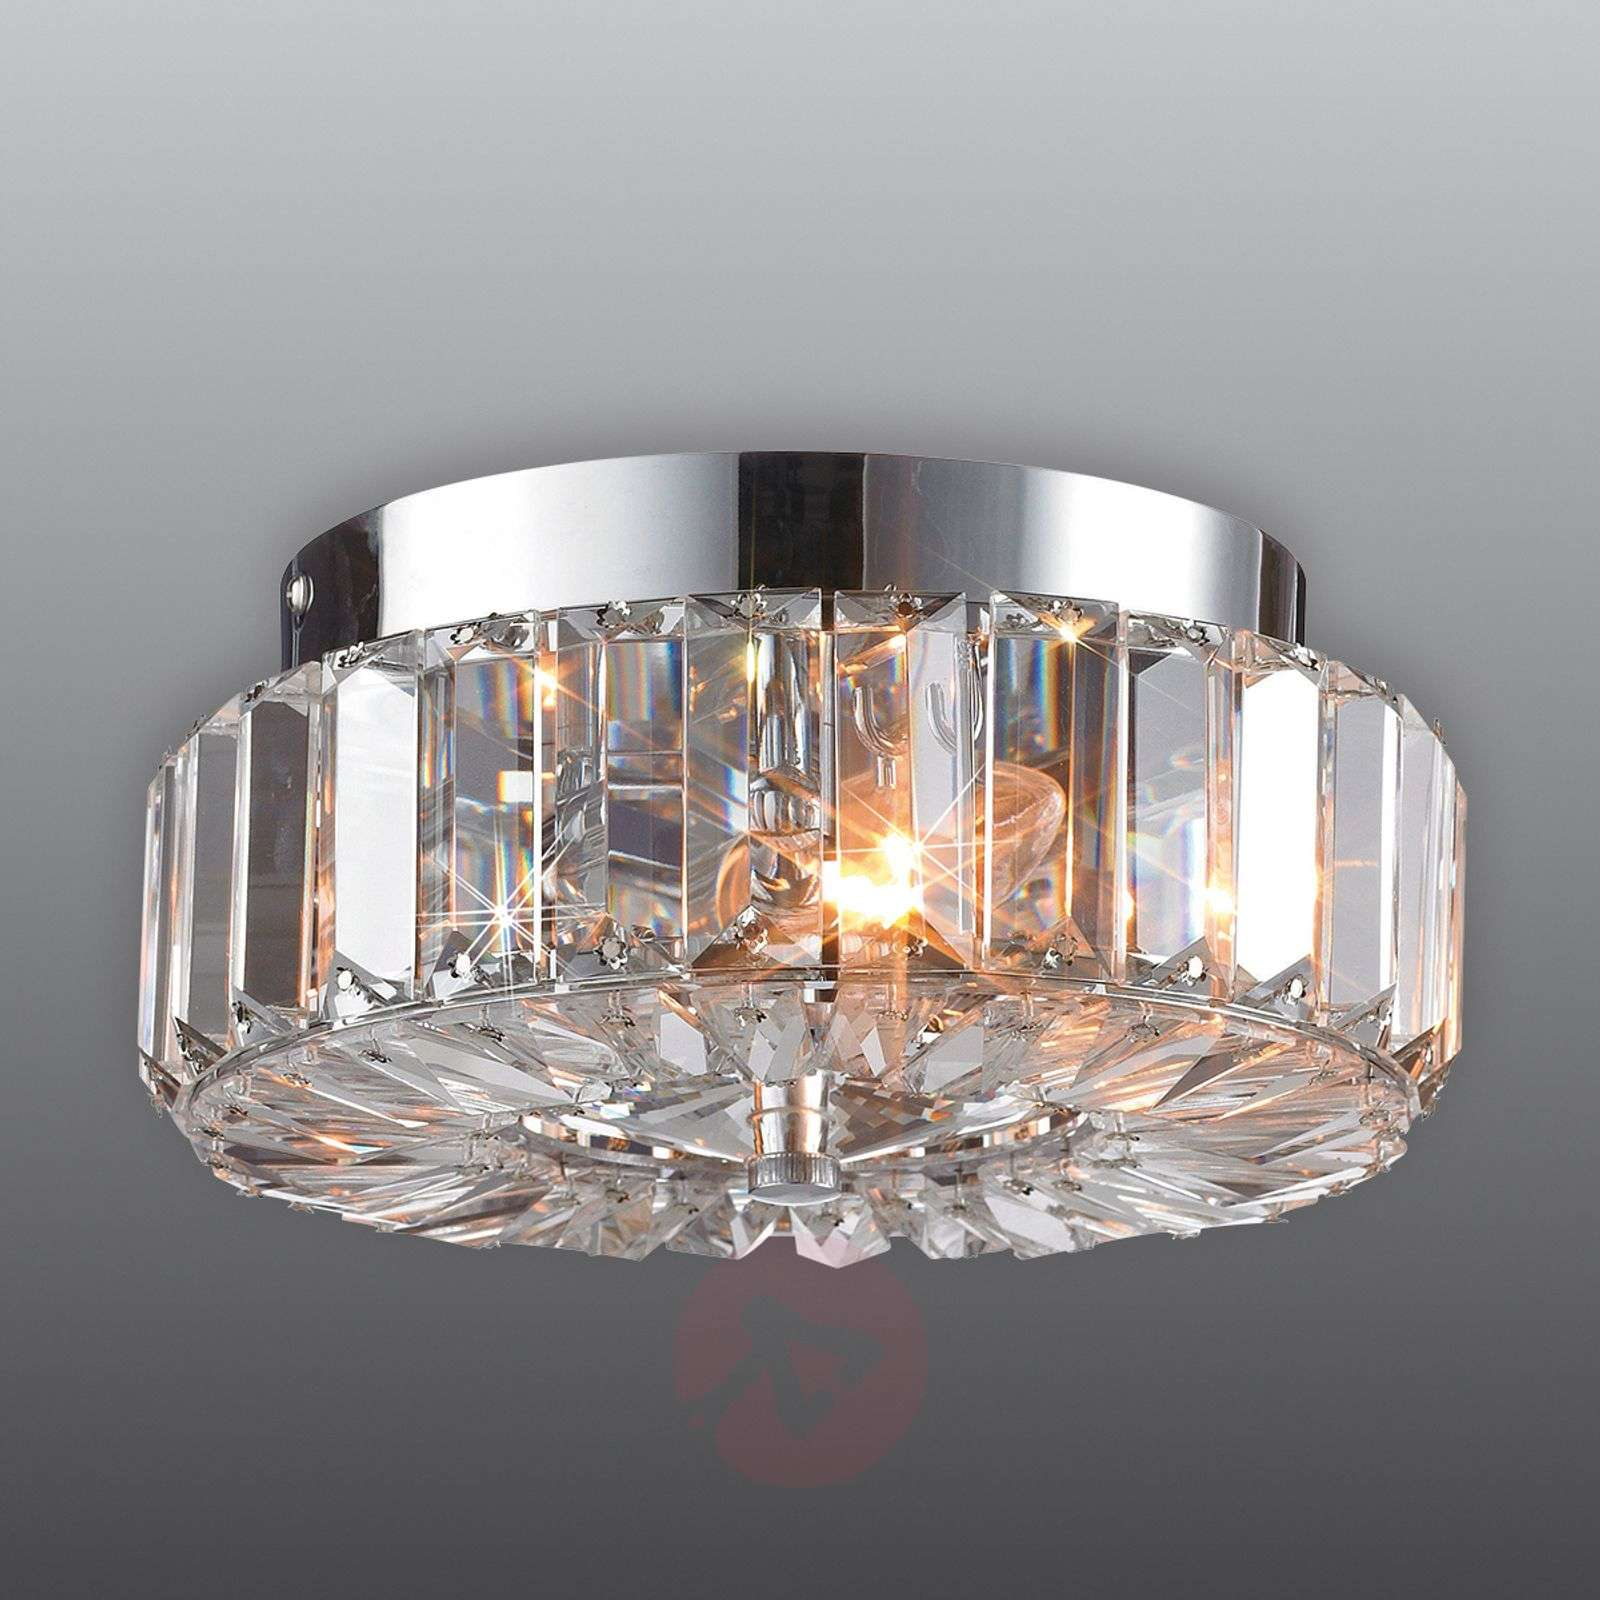 Fascinating ULRIKSDAL ceiling light with crystal-6505475-01